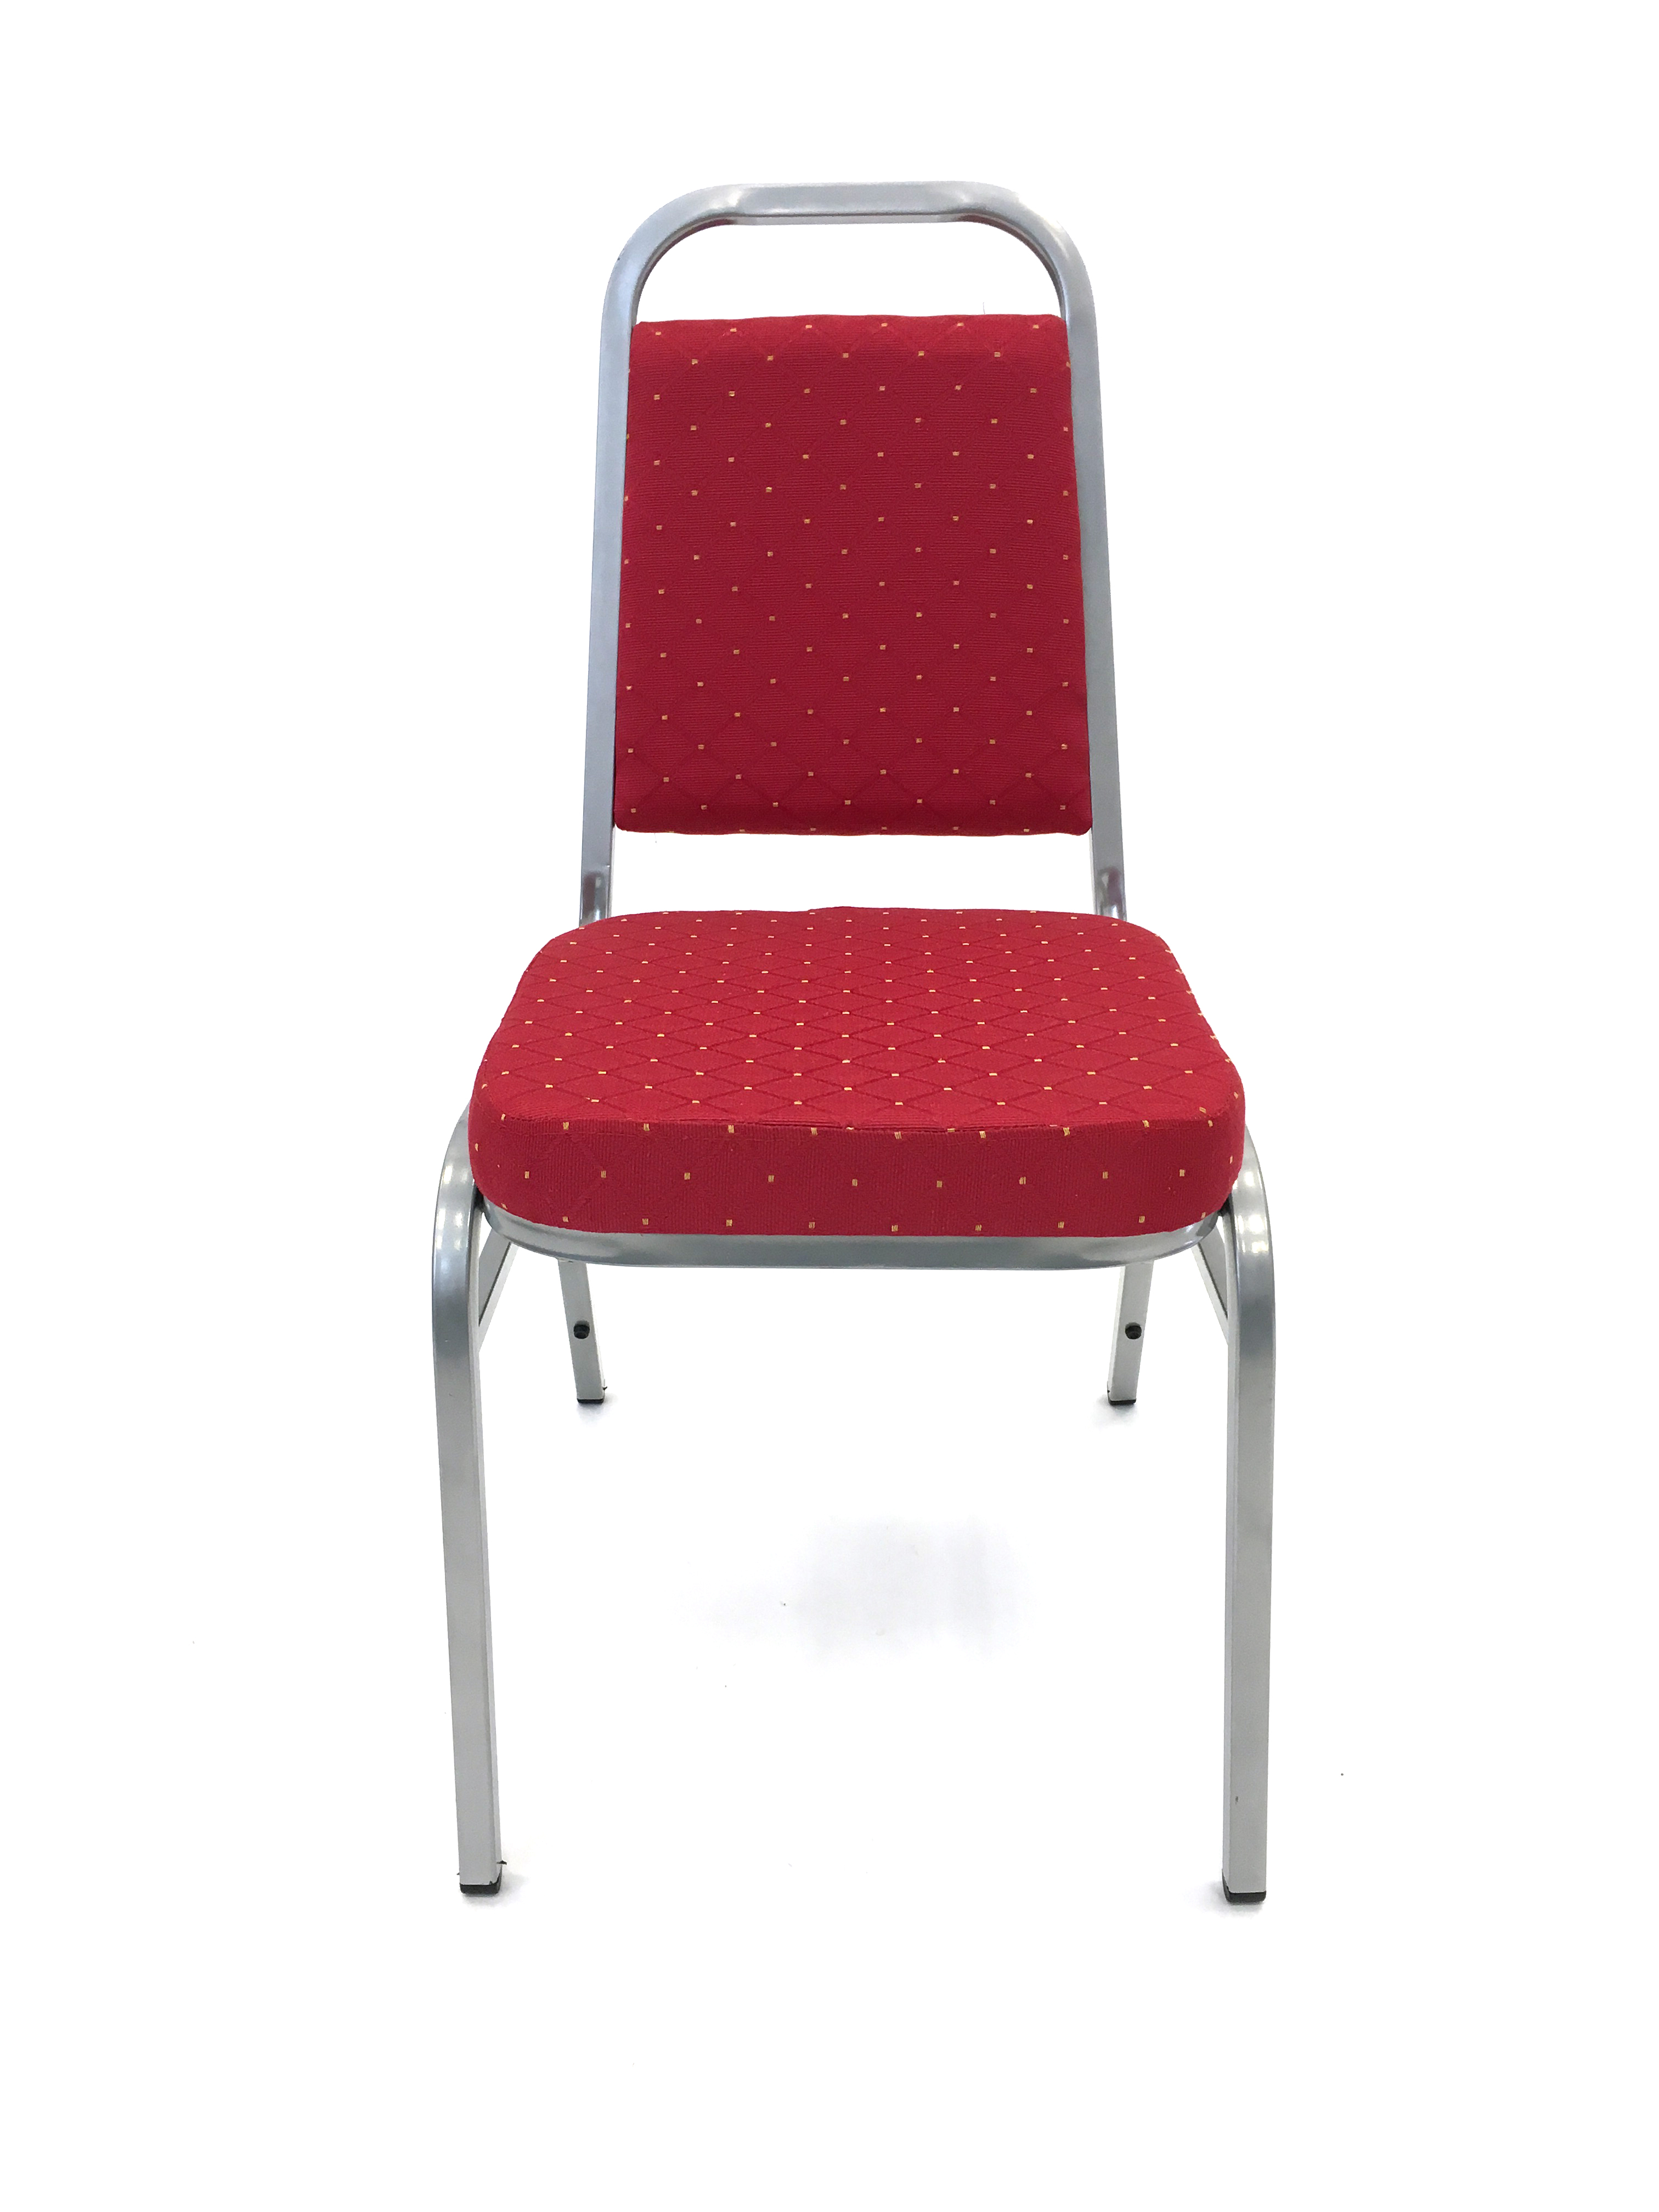 Red Bud Banquet Chair Hire Weddings Event Chairs BE Event Hire